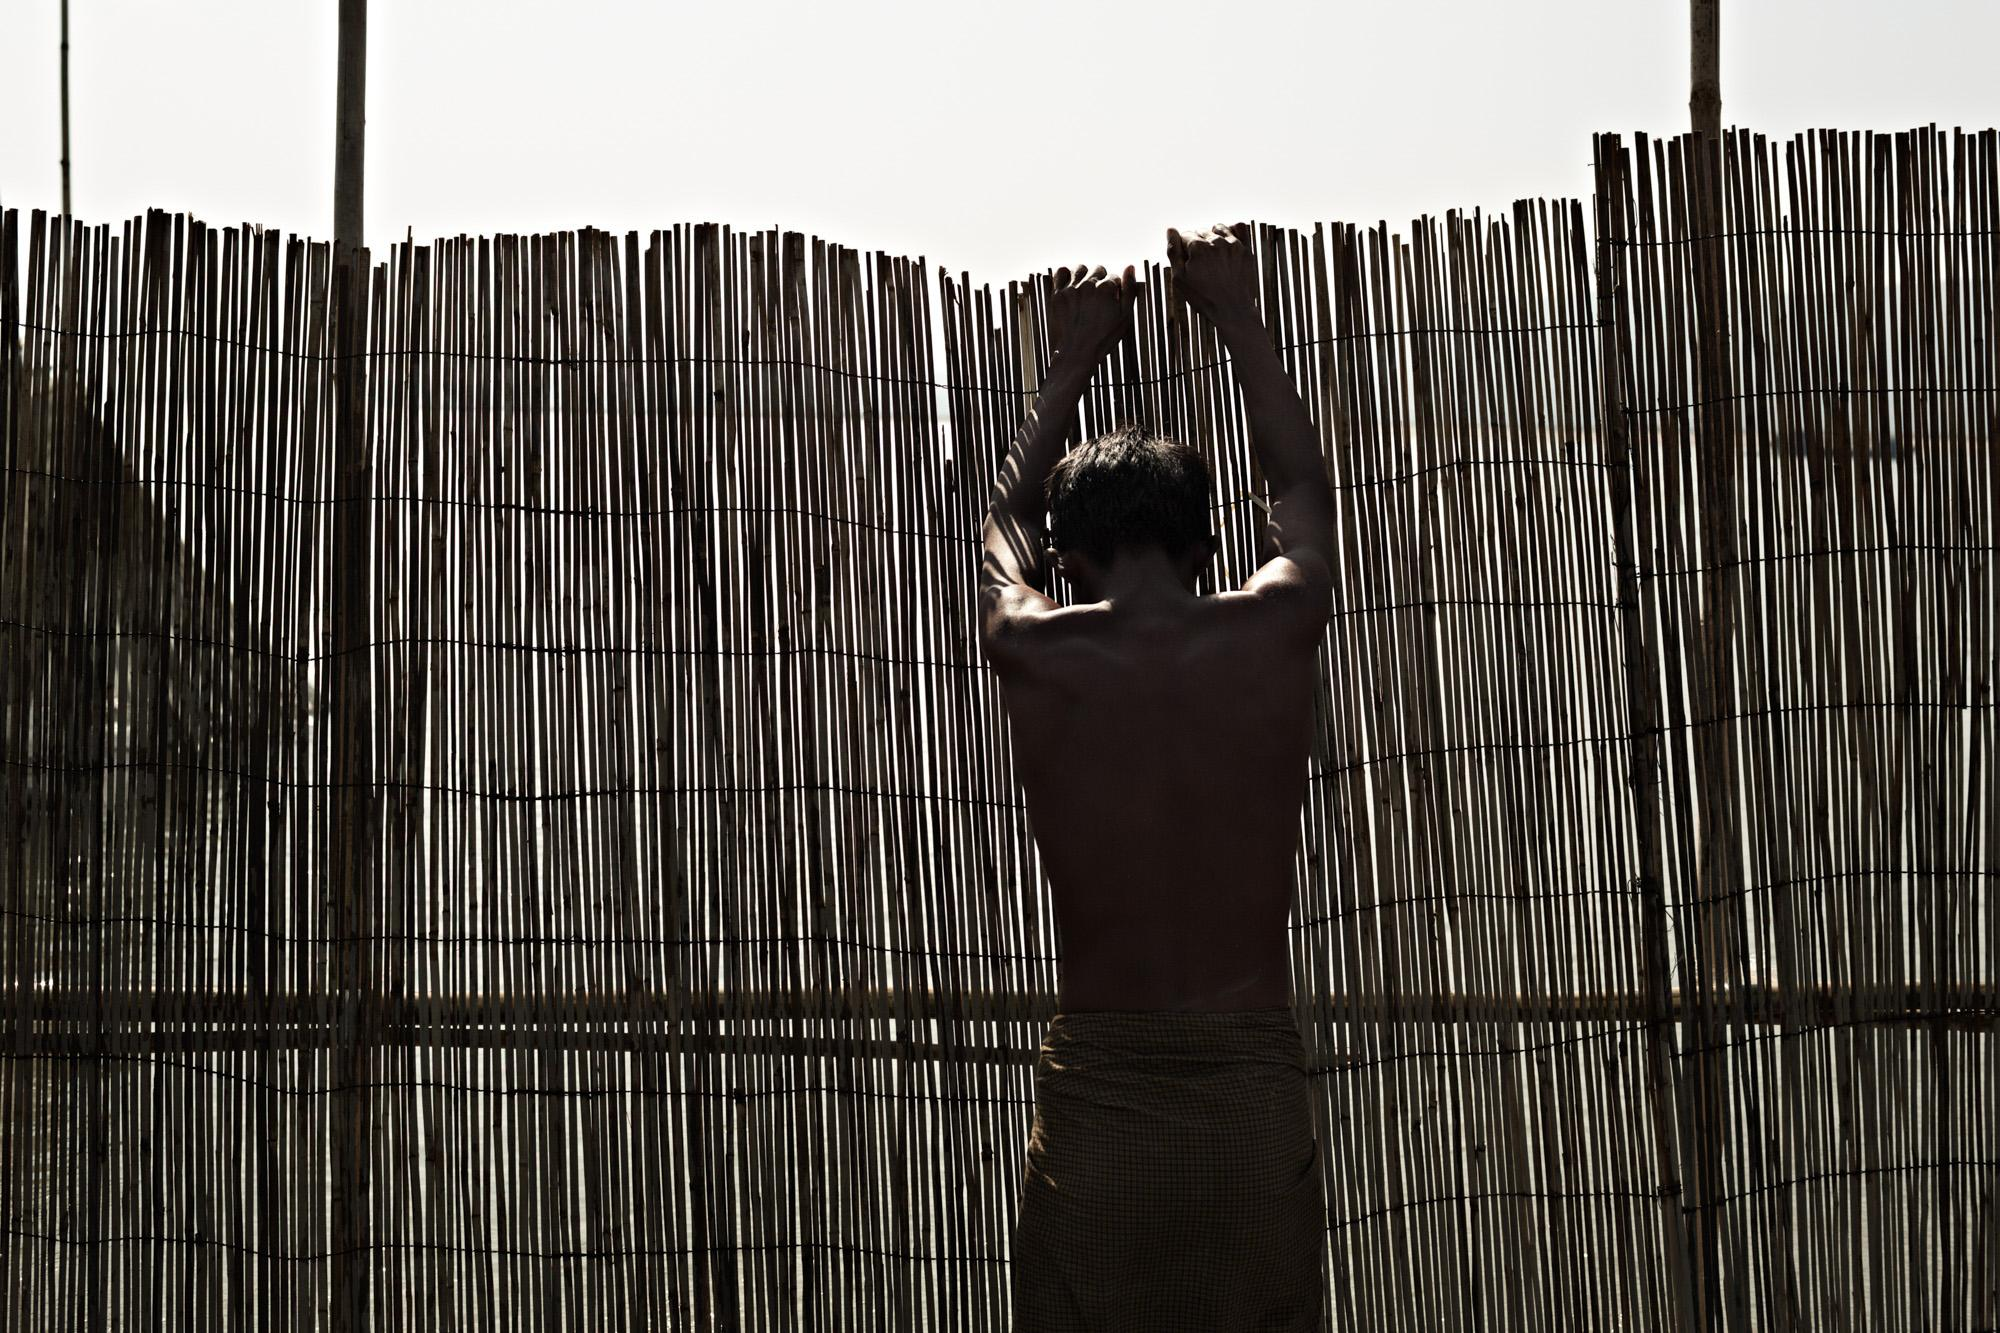 A fisherman puts up bamboo fencing to channel fish from the Irrawaddy River into a net near Mandalay, Myanmar.